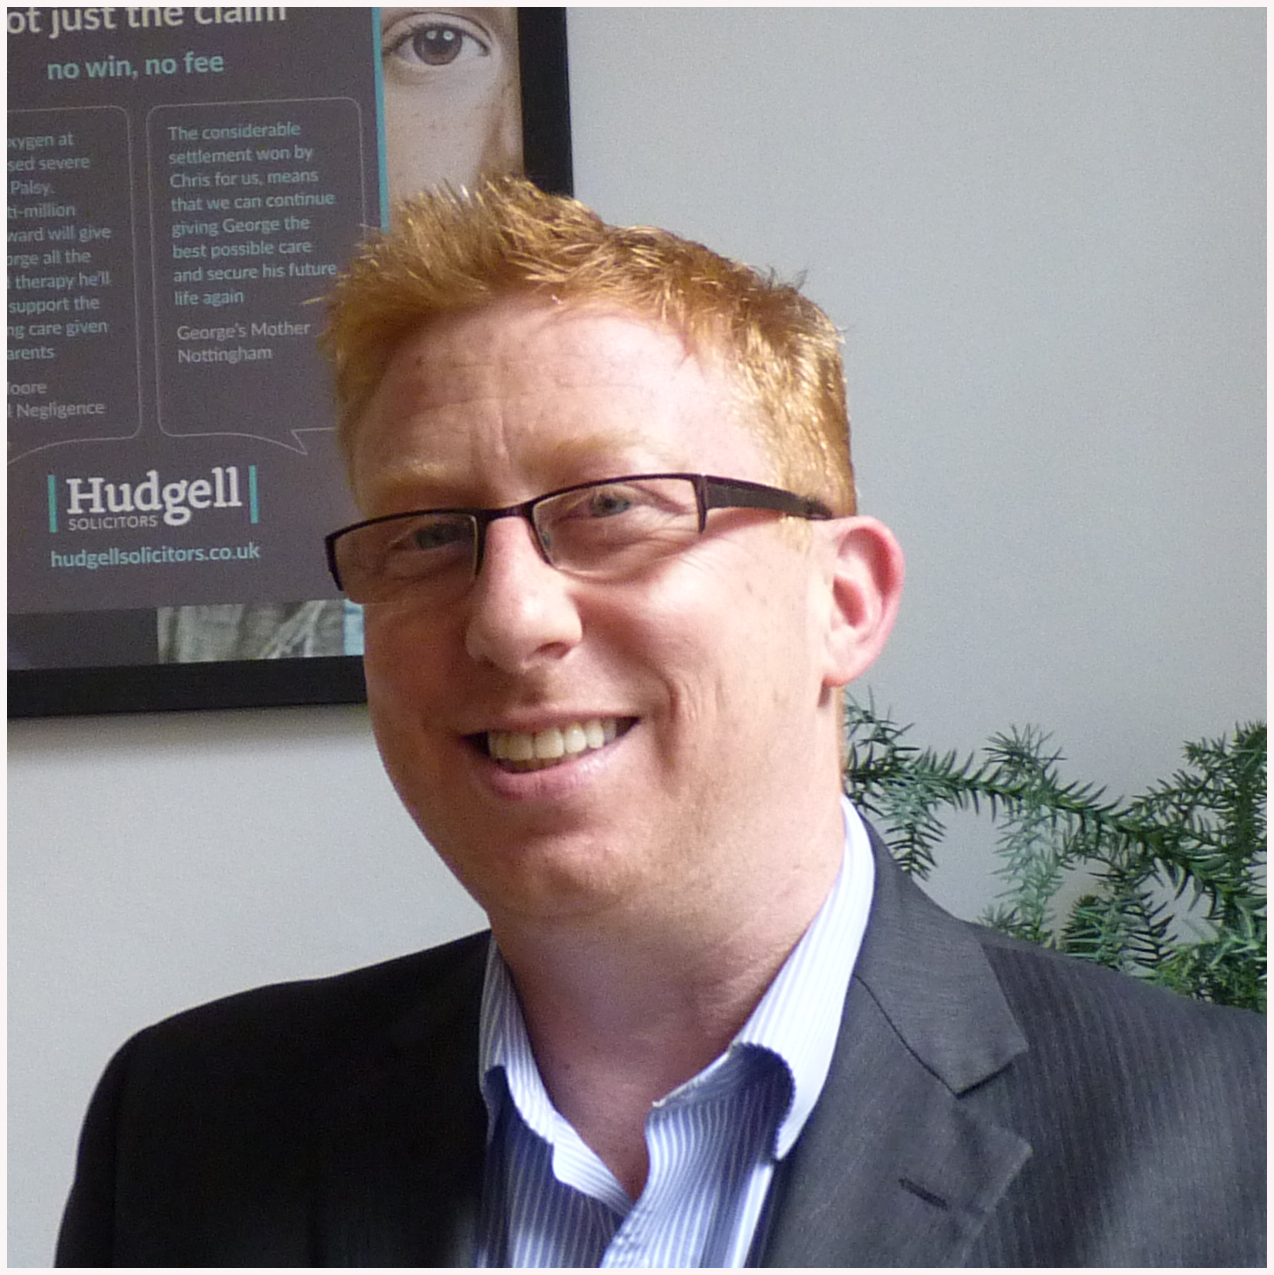 Specialist solicitor Samuel McFadyen shortlisted for national 'Unsung Claims Hero' award for helping seriously injured towards recovery